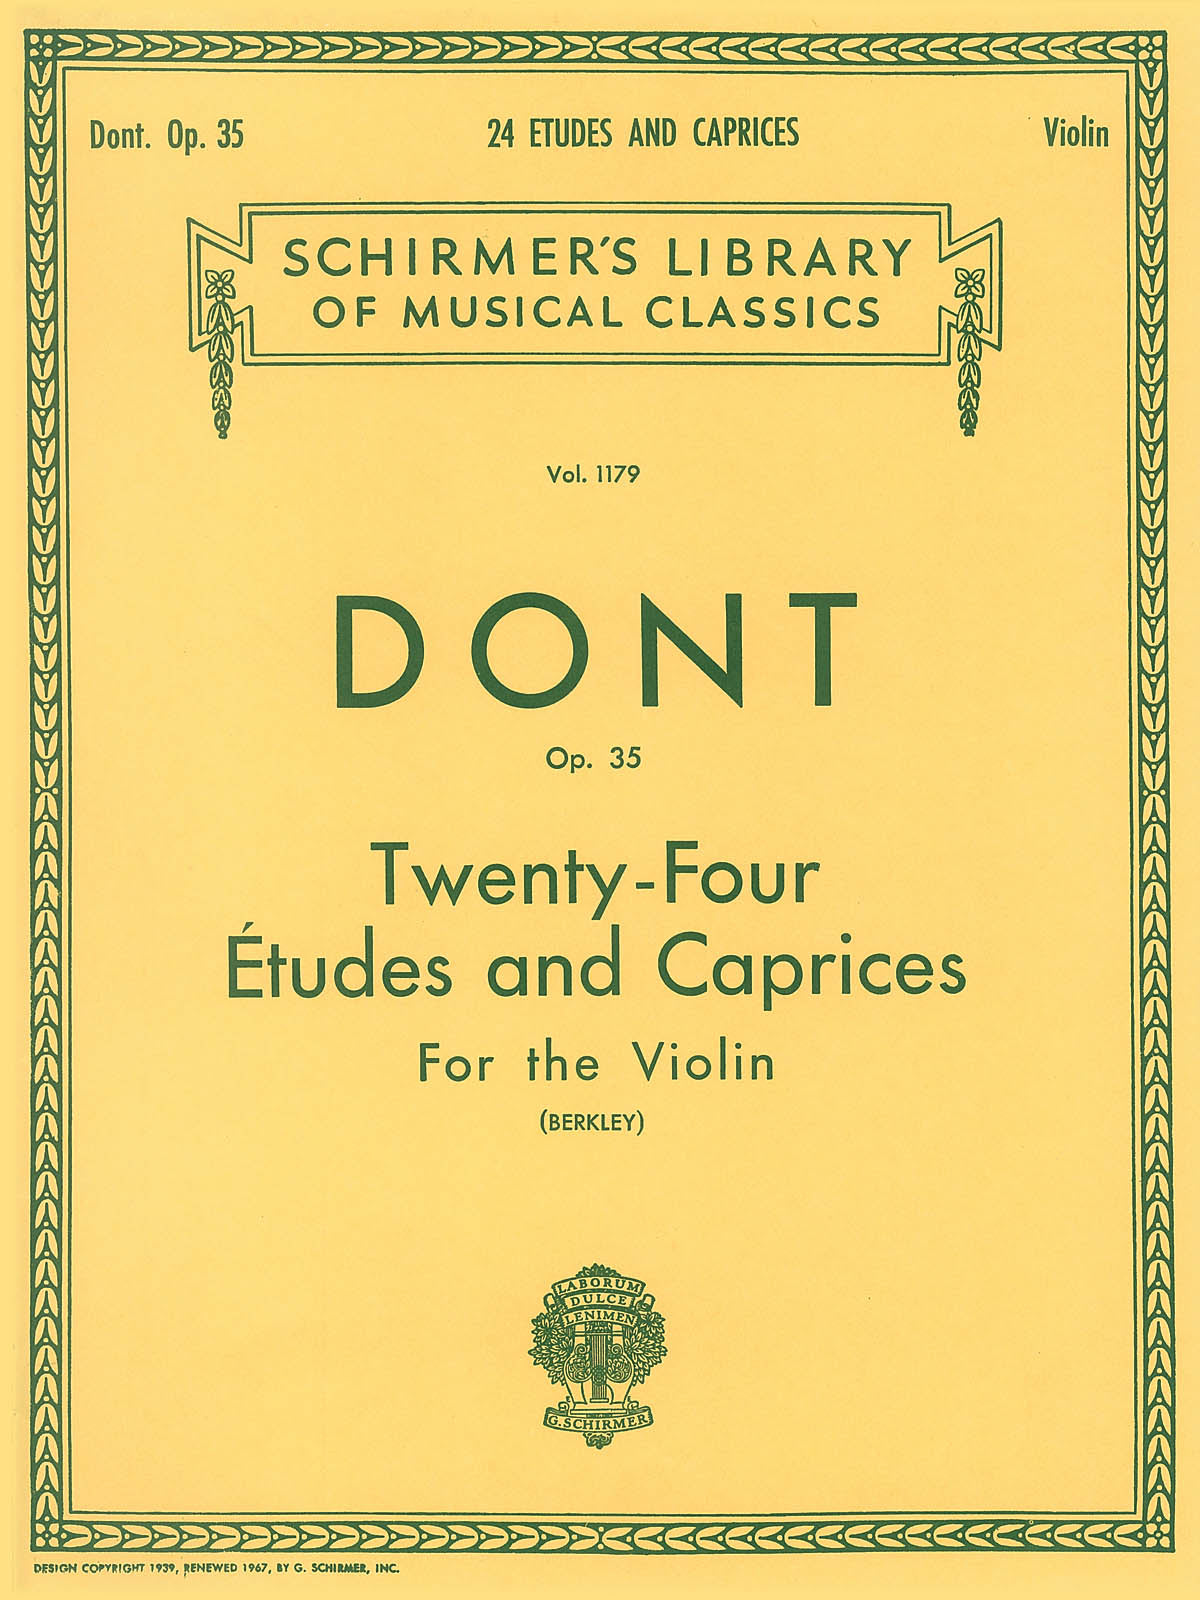 Dont: 24 Etudes and Caprices, Op. 35